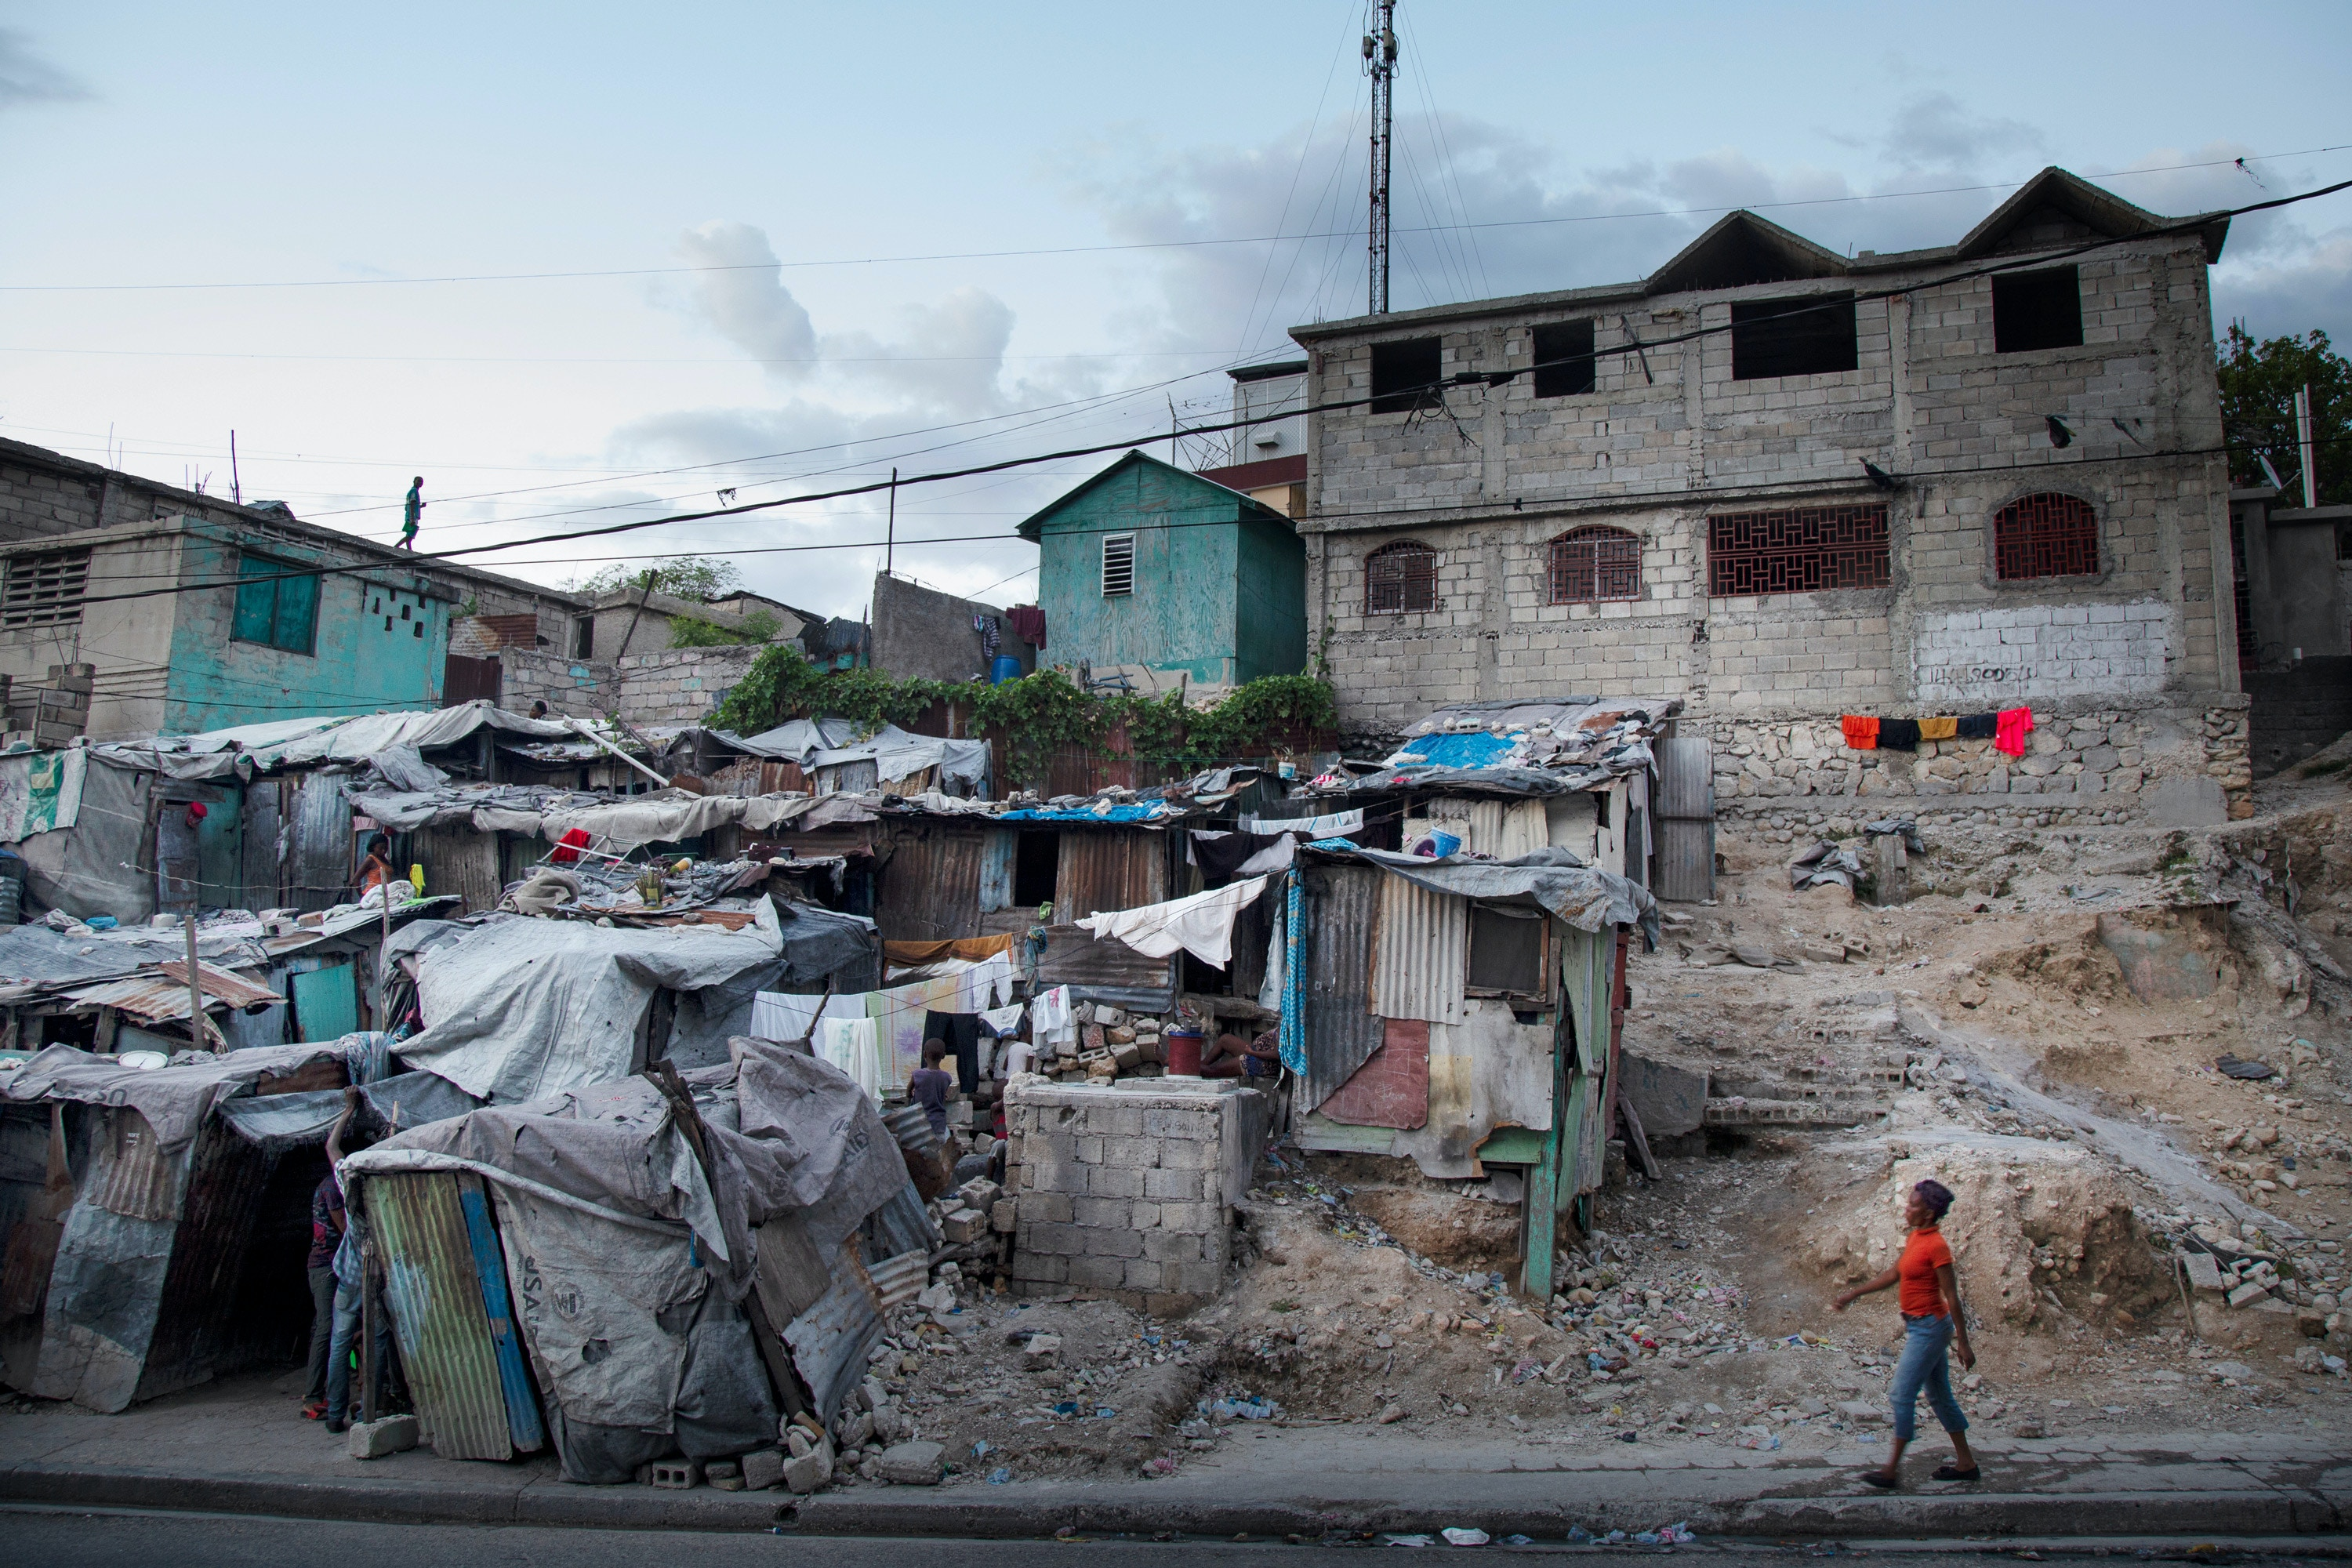 A tent community that has existed in the Fort National neighborhood of Port-au-Prince since the 2010 earthquake.